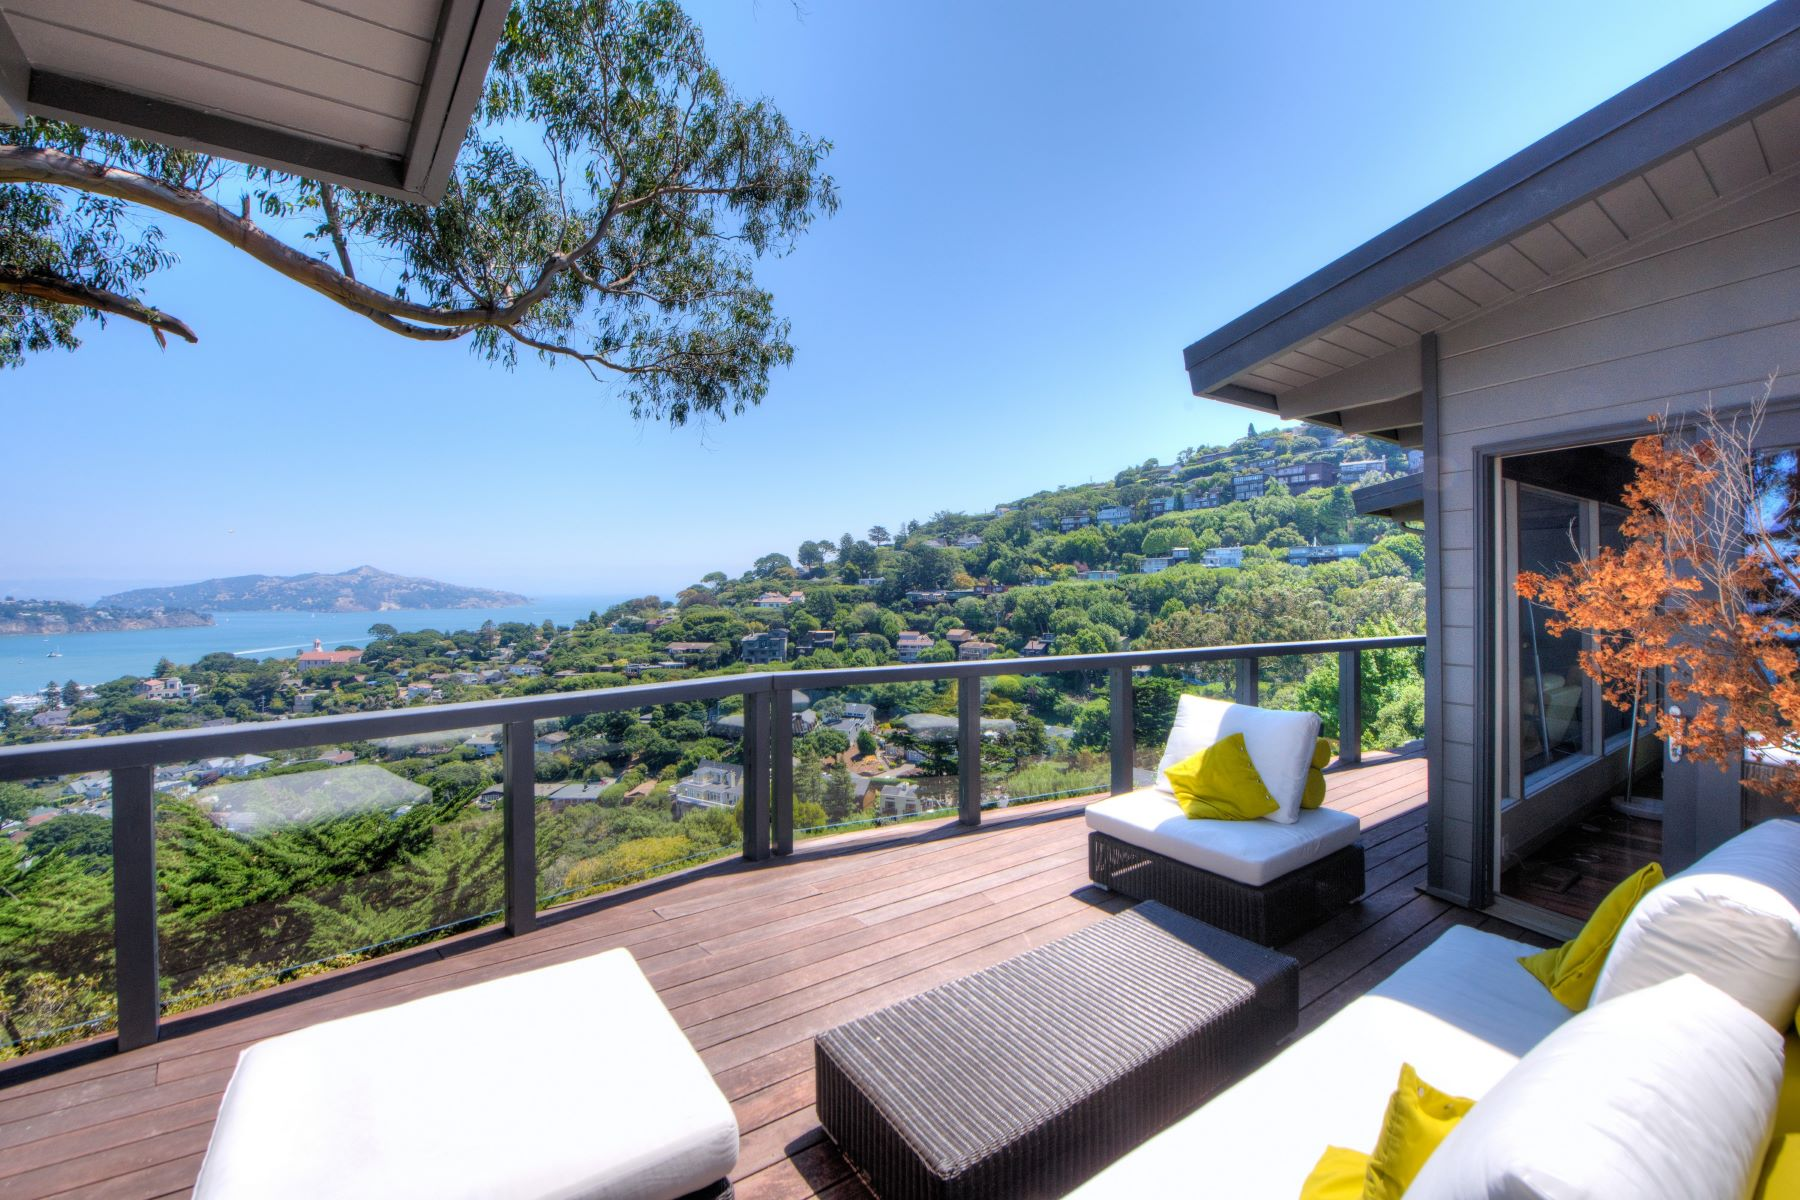 Additional photo for property listing at Contemporary with Stunning Bay Views! 51 George Lane Sausalito, Kalifornien 94965 Vereinigte Staaten